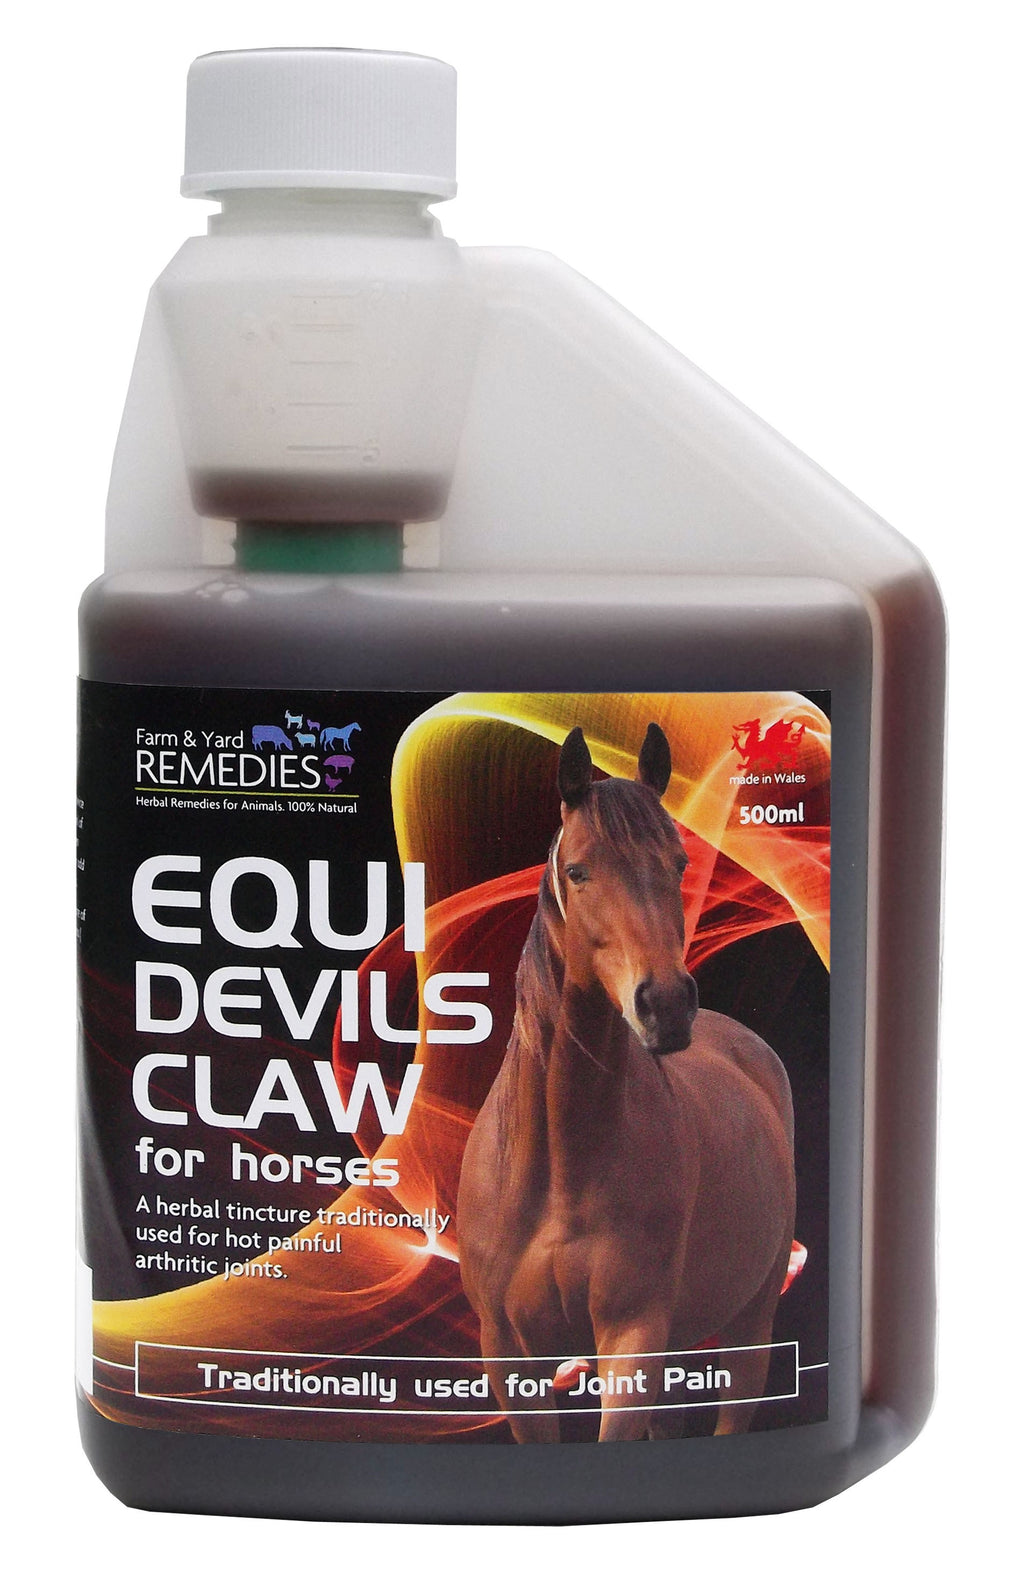 Farm and Yard Remedies Equi Devils Claw Herbal Supplement for Arthritis Pain Relief and Joint Support for Horses All Natural